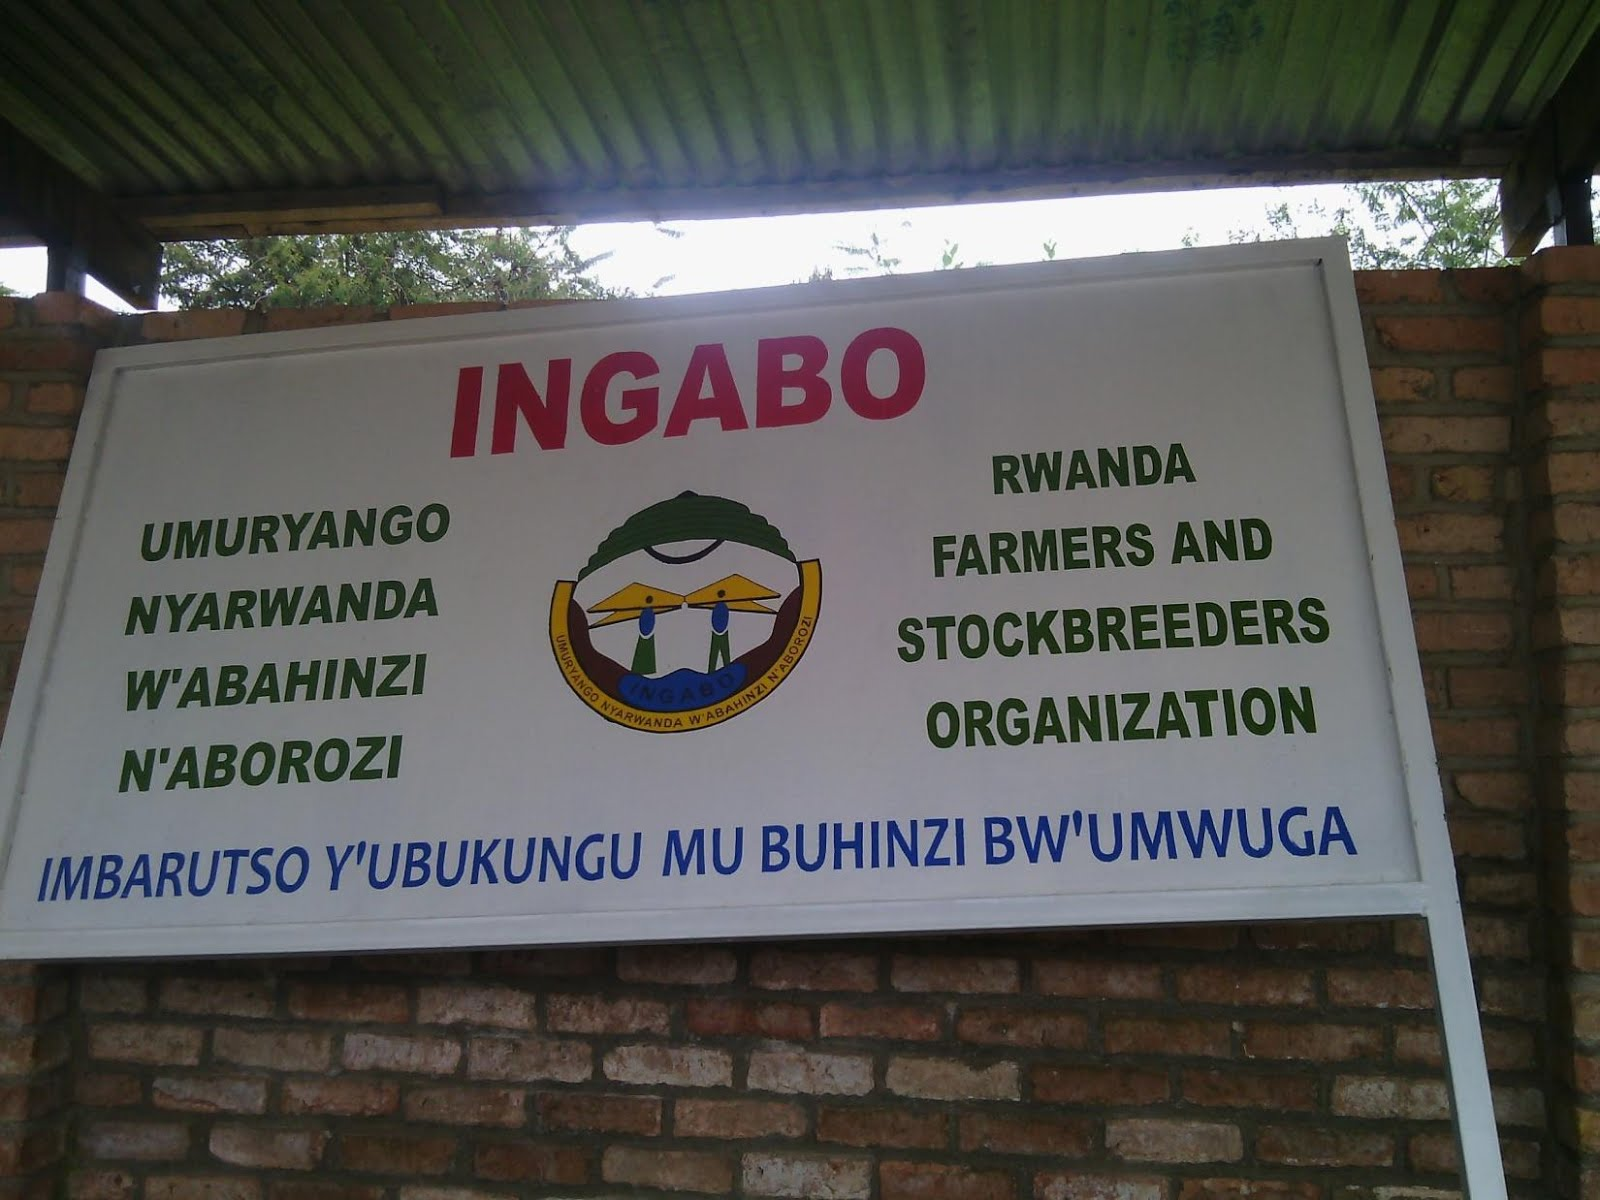 C:\Documents and Settings\user\Desktop\INDIRIMBO\ISIMBI 51\UDAHEMUKA\Fondation Mgr RWABILINDA\PHOTO\Picture and video 437.jpg